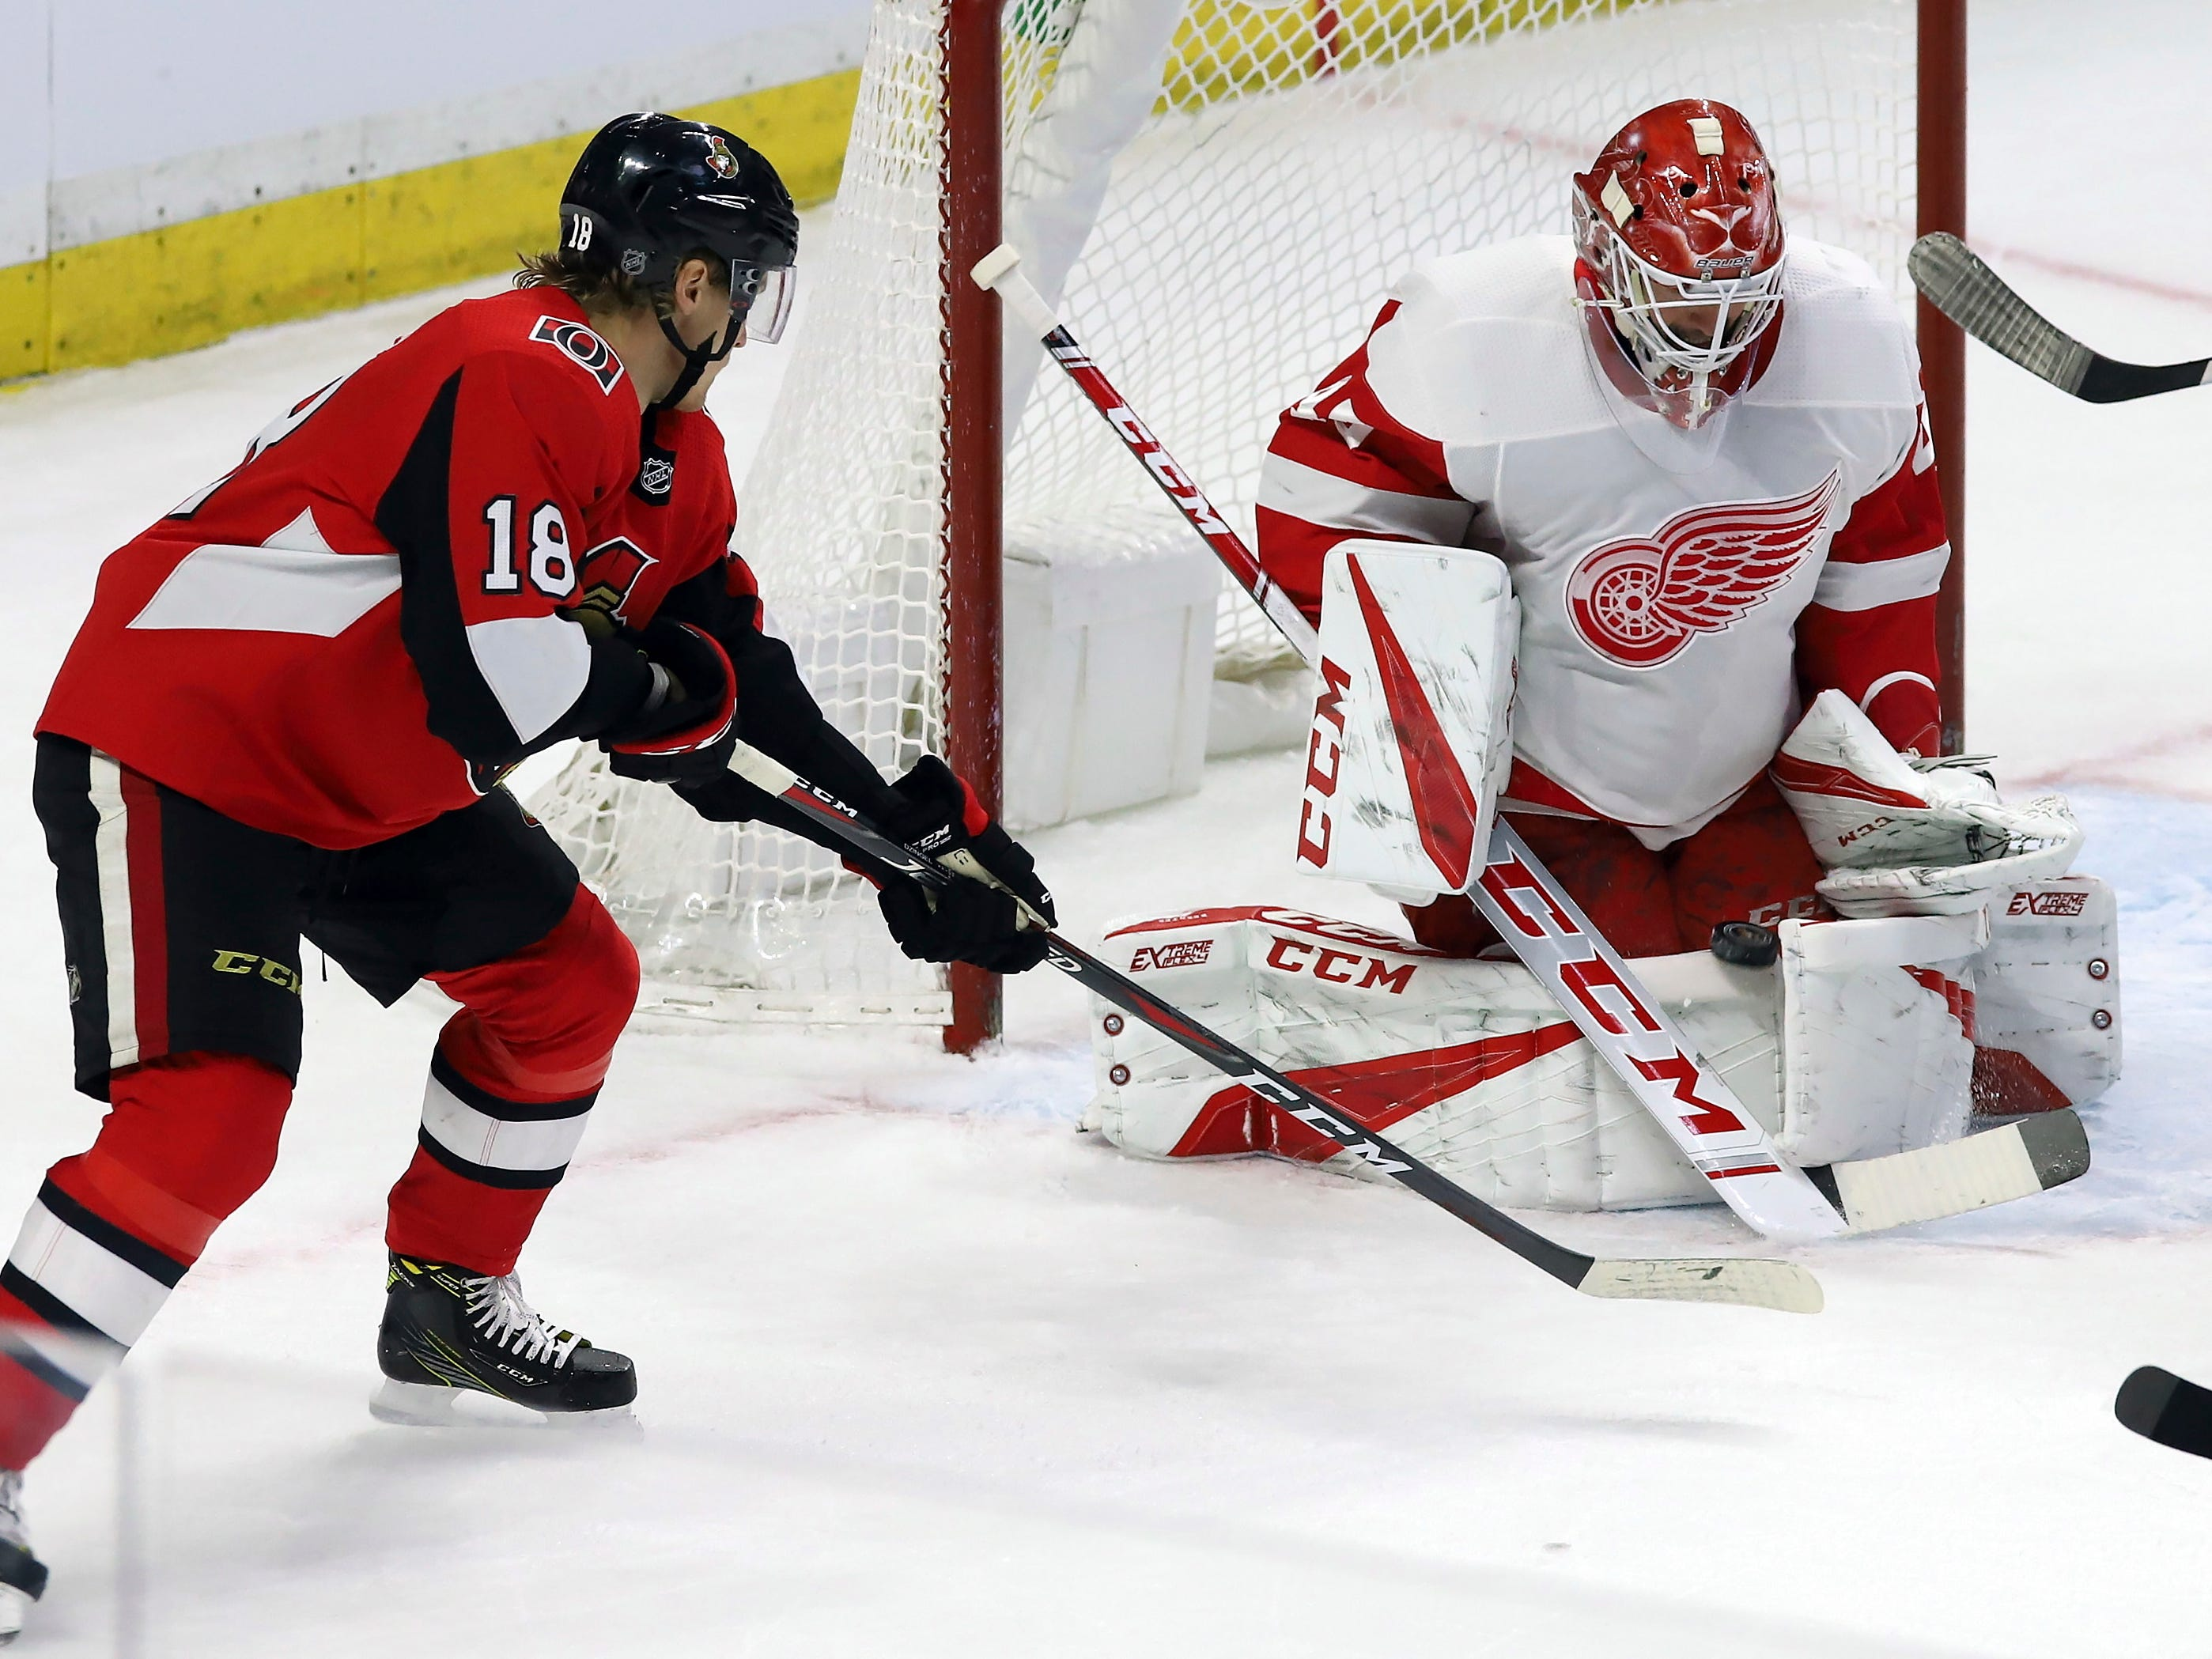 Detroit Red Wings goaltender Jonathan Bernier (45) makes a pad-save on a shot by Ottawa Senators' Ryan Dzingel (18) during the third period.